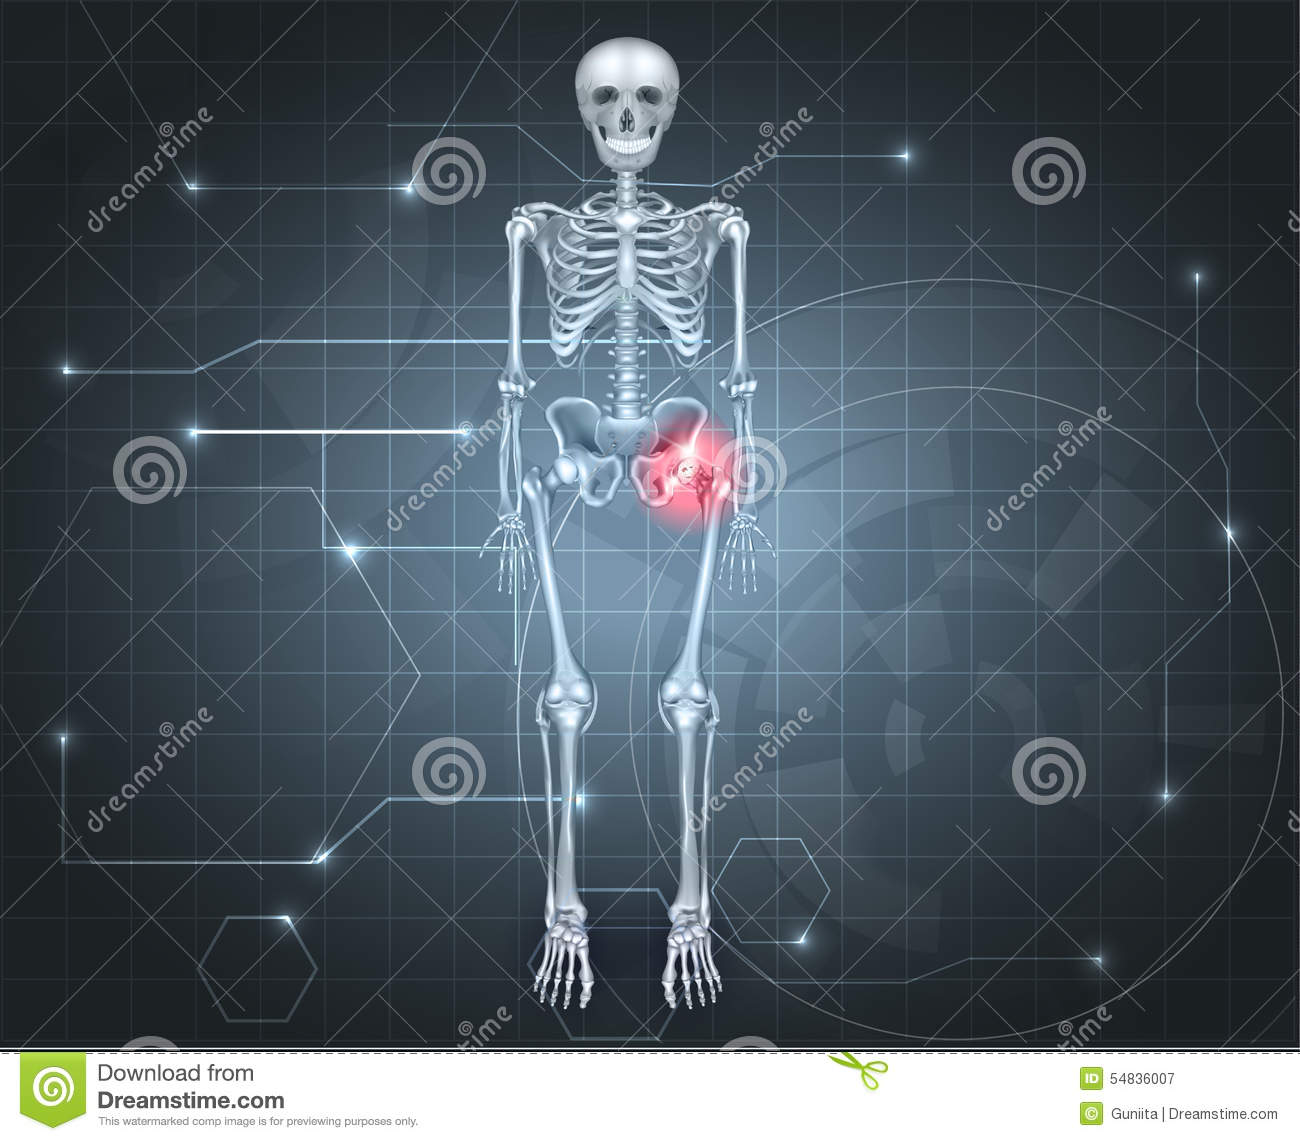 Skeleton With Hip Joint Pain Stock Vector - Illustration of graphic ...